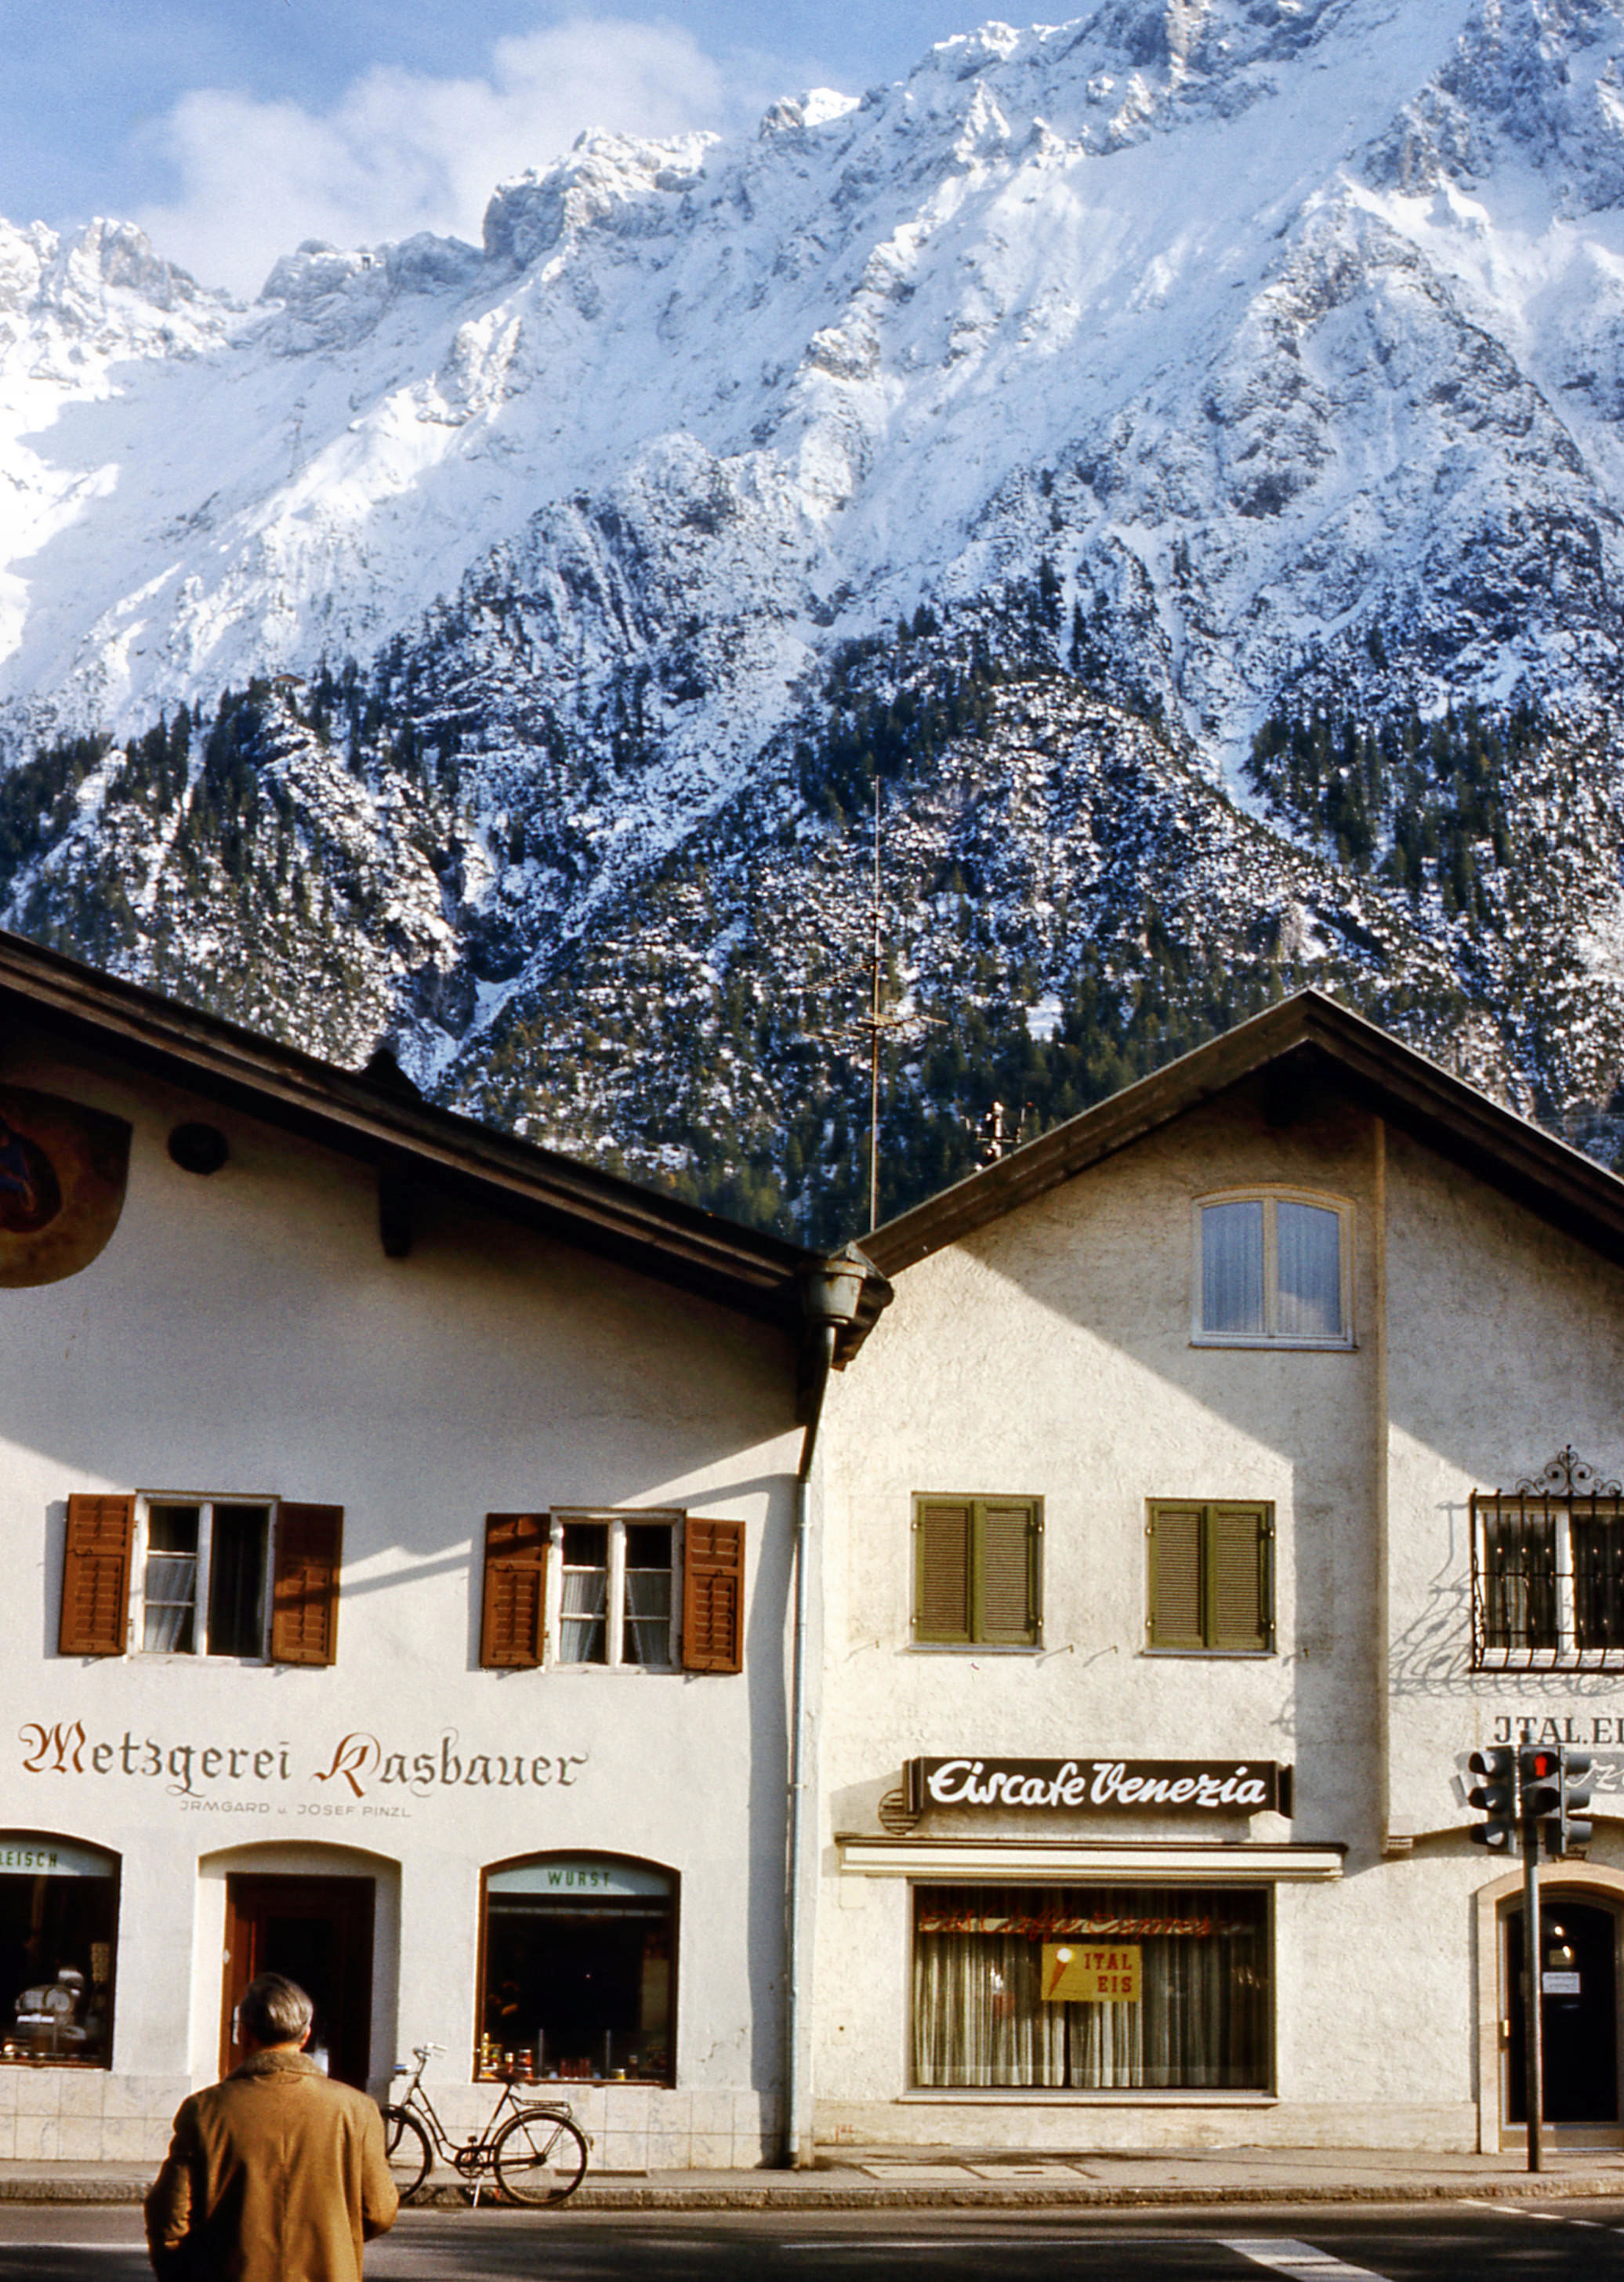 This should be Mittenwald-1.jpeg.  Is it missing?